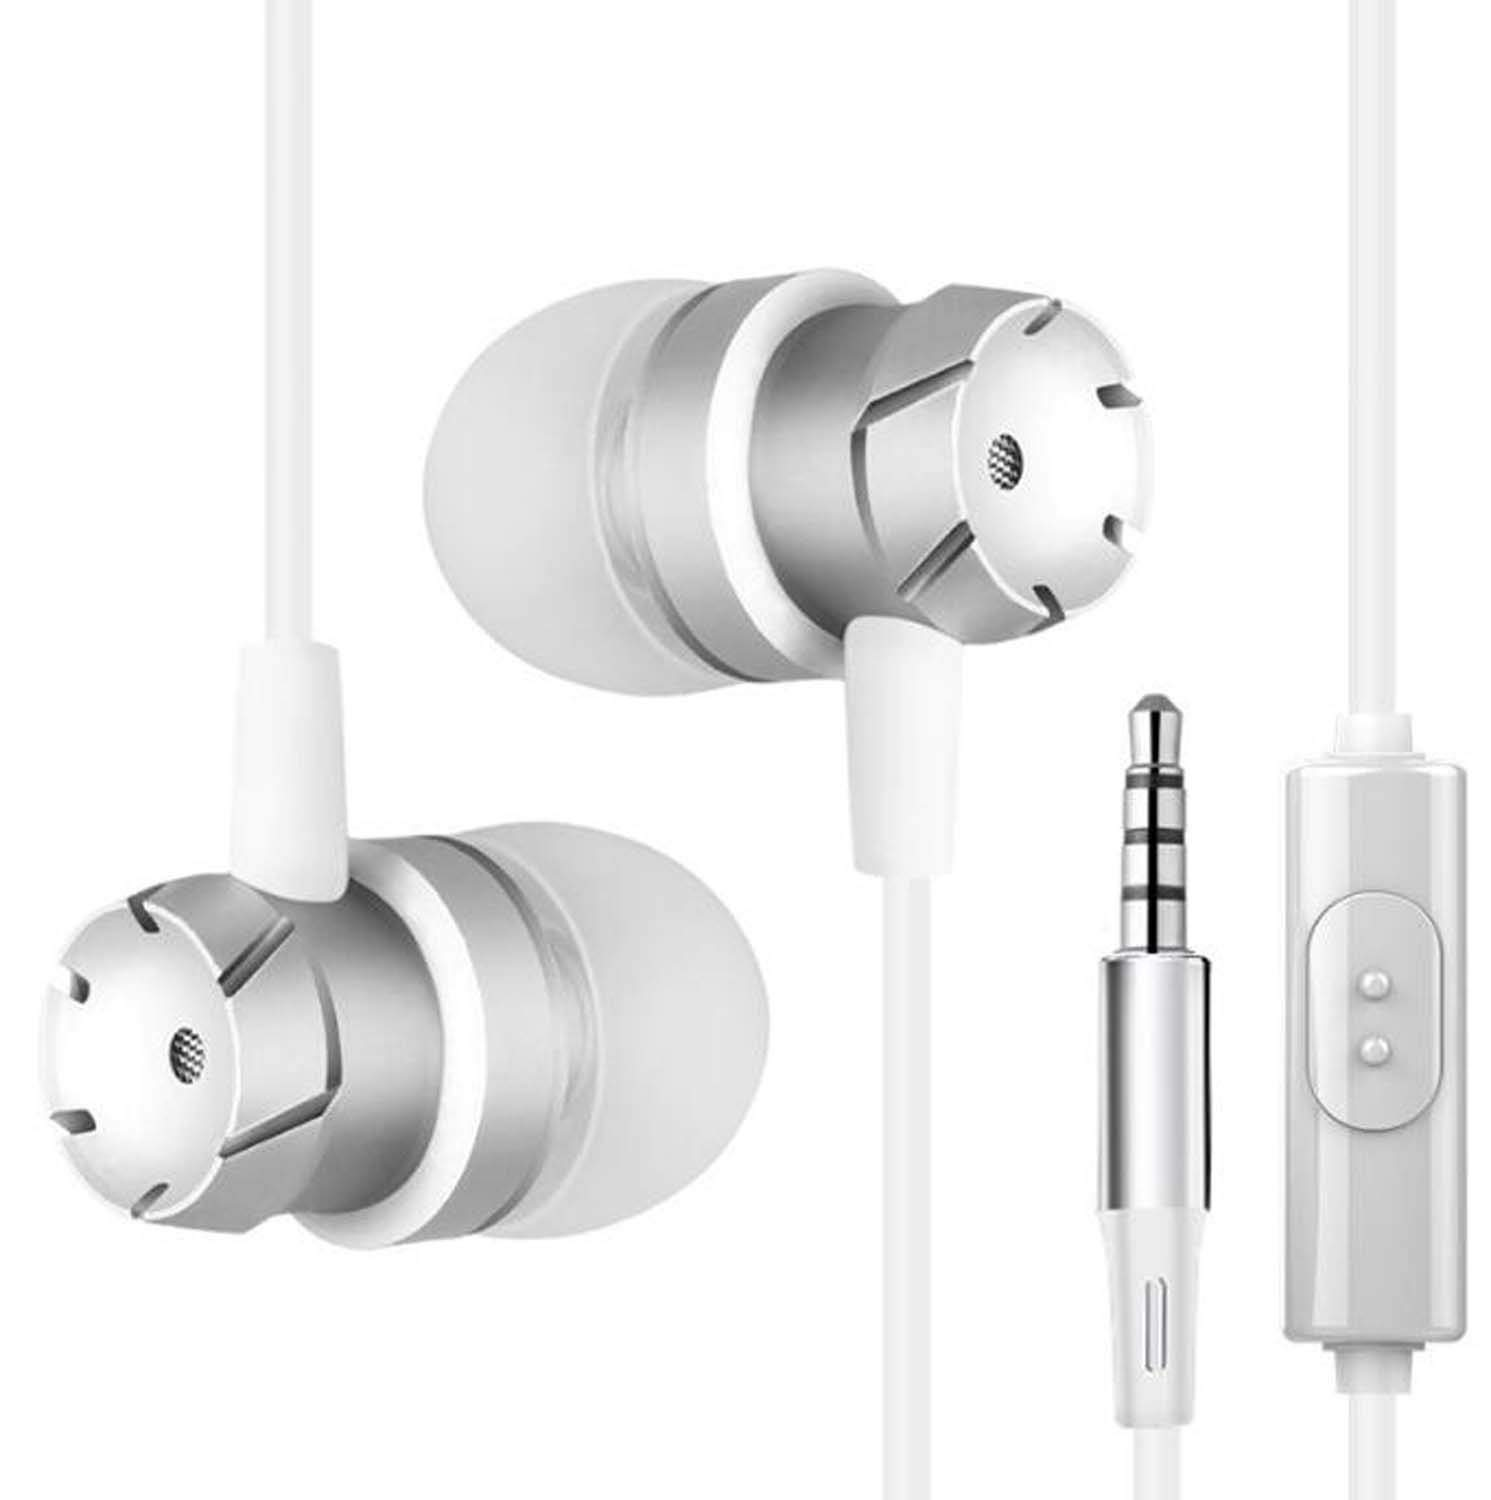 Hzhy In-ear Headphones Turbo Subwoofer With Wheat Wire Control Mobile Computer MP3 Universal Headphones (Color : White)